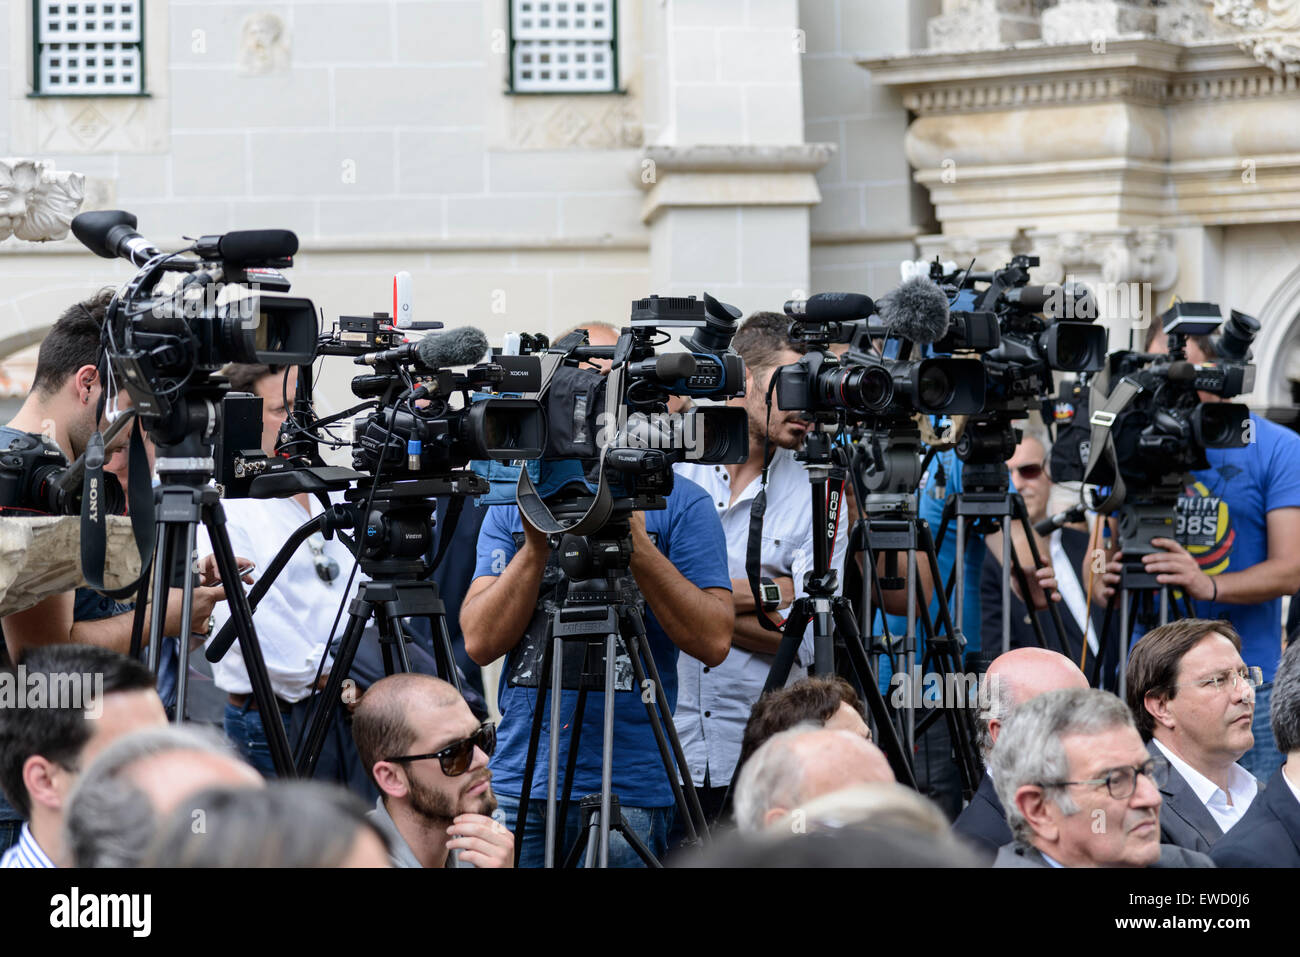 News cameramen covering an event - Stock Image